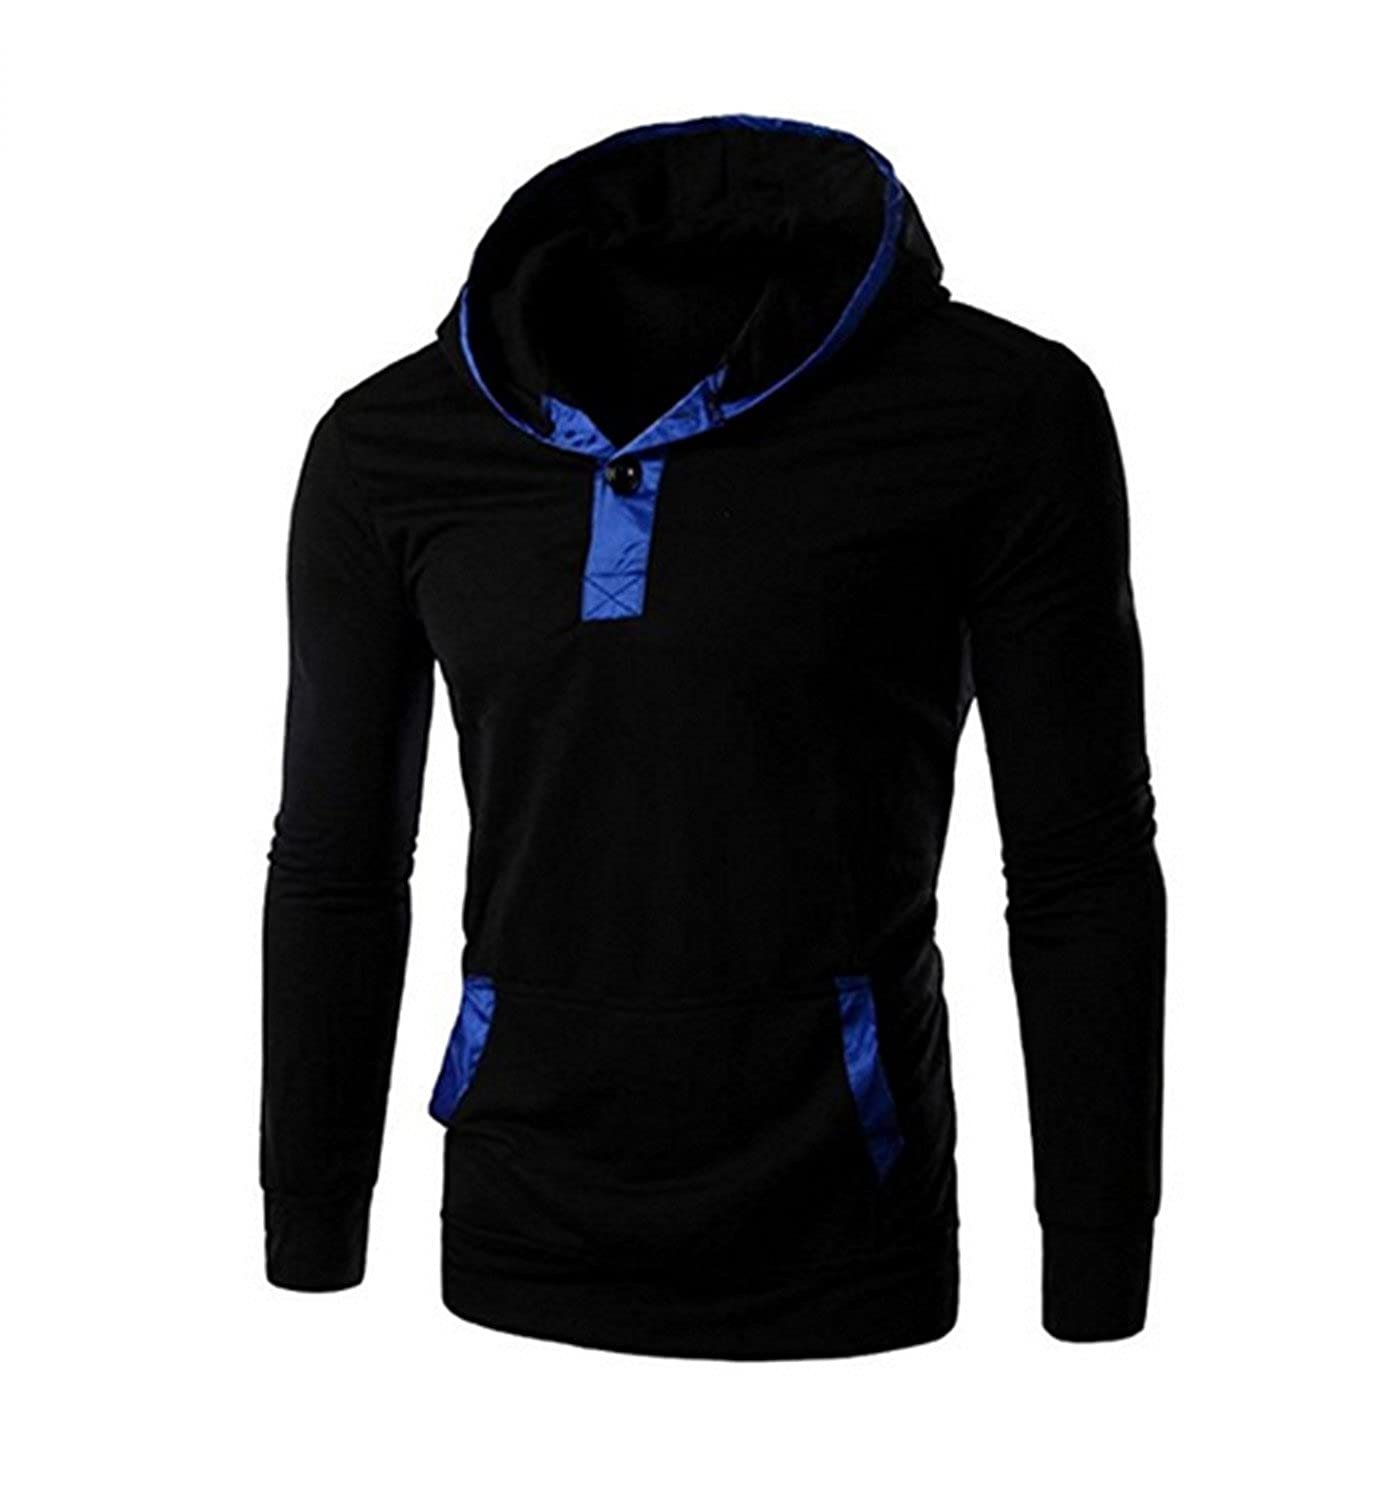 Toping Fine Mens Fashion Relaxed Long Sleeve Sweatshirts